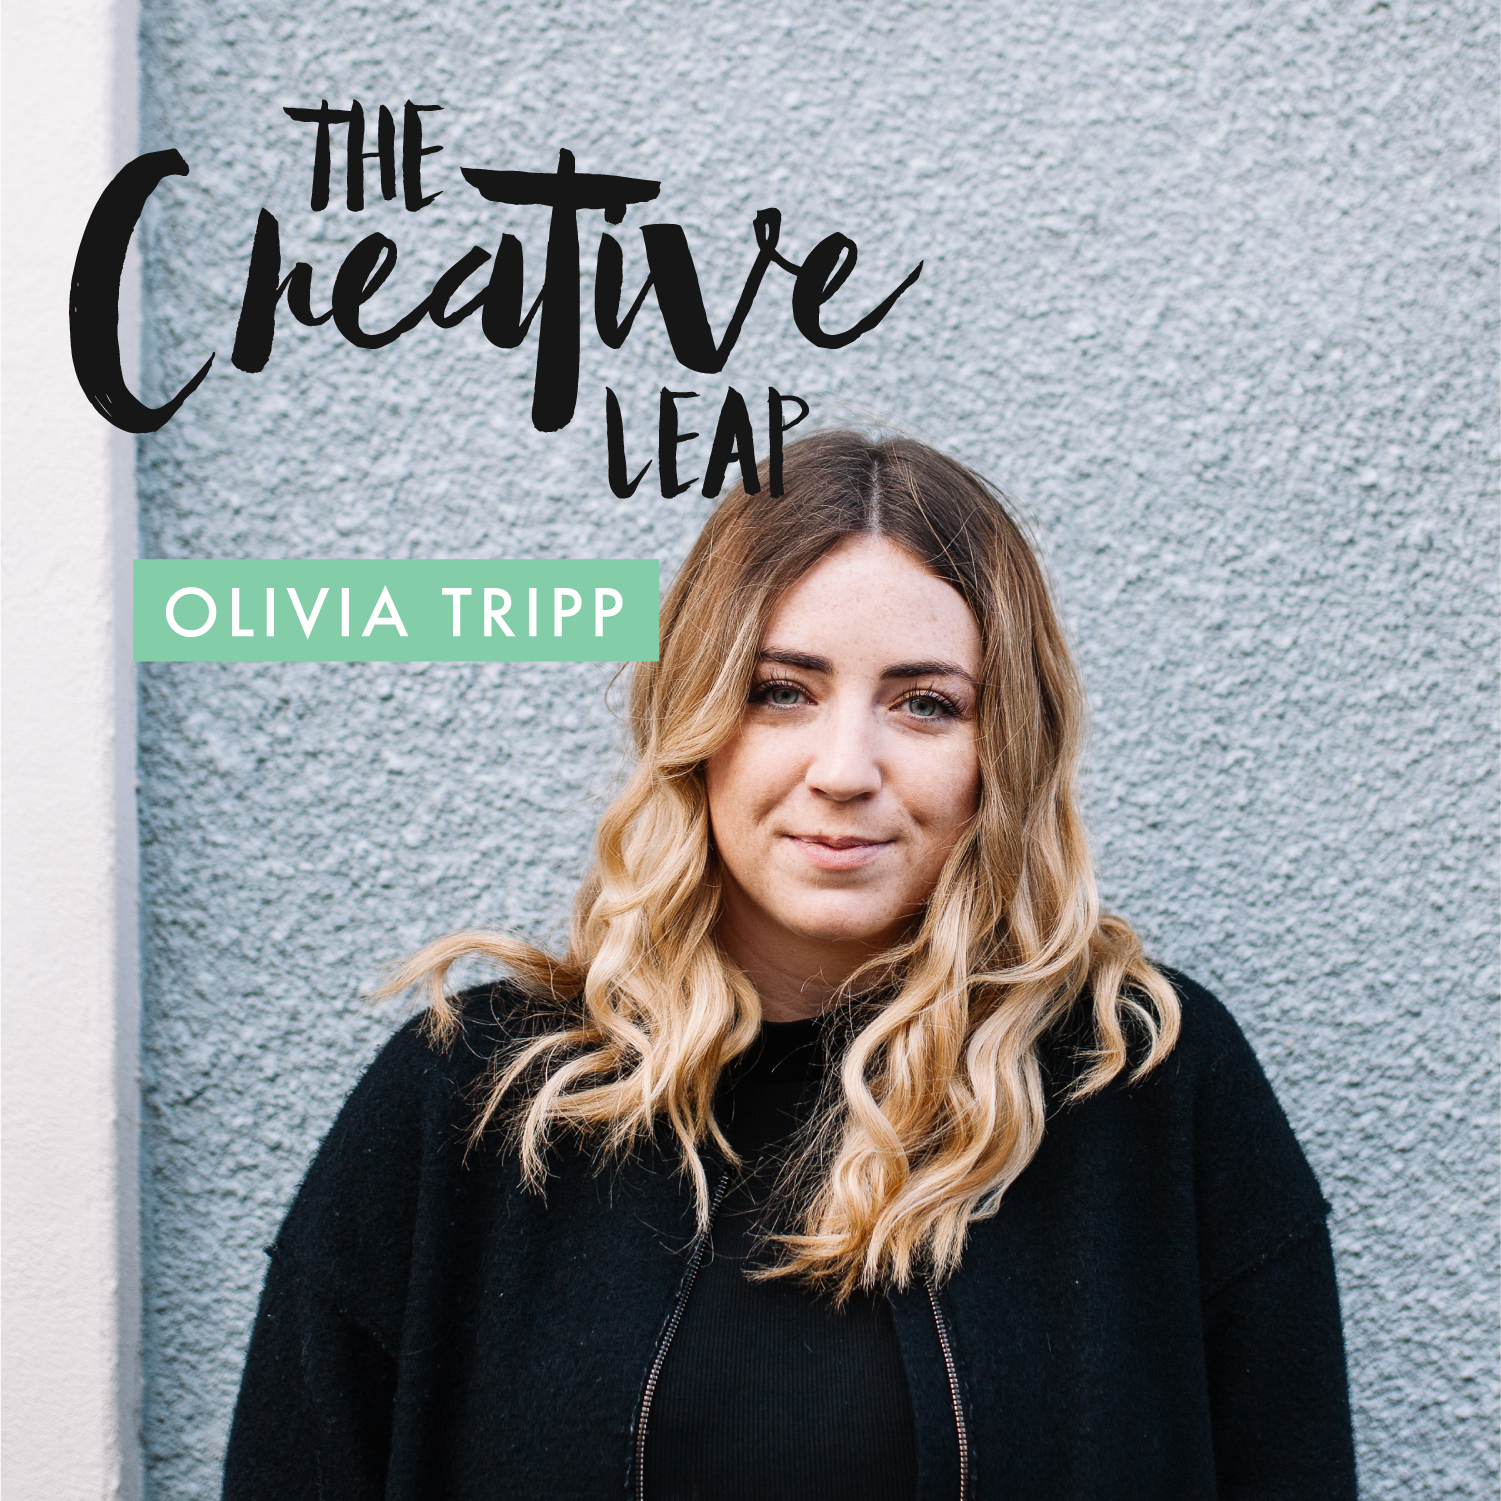 The-Creative-Leap-Olivia-Tripp-1.png